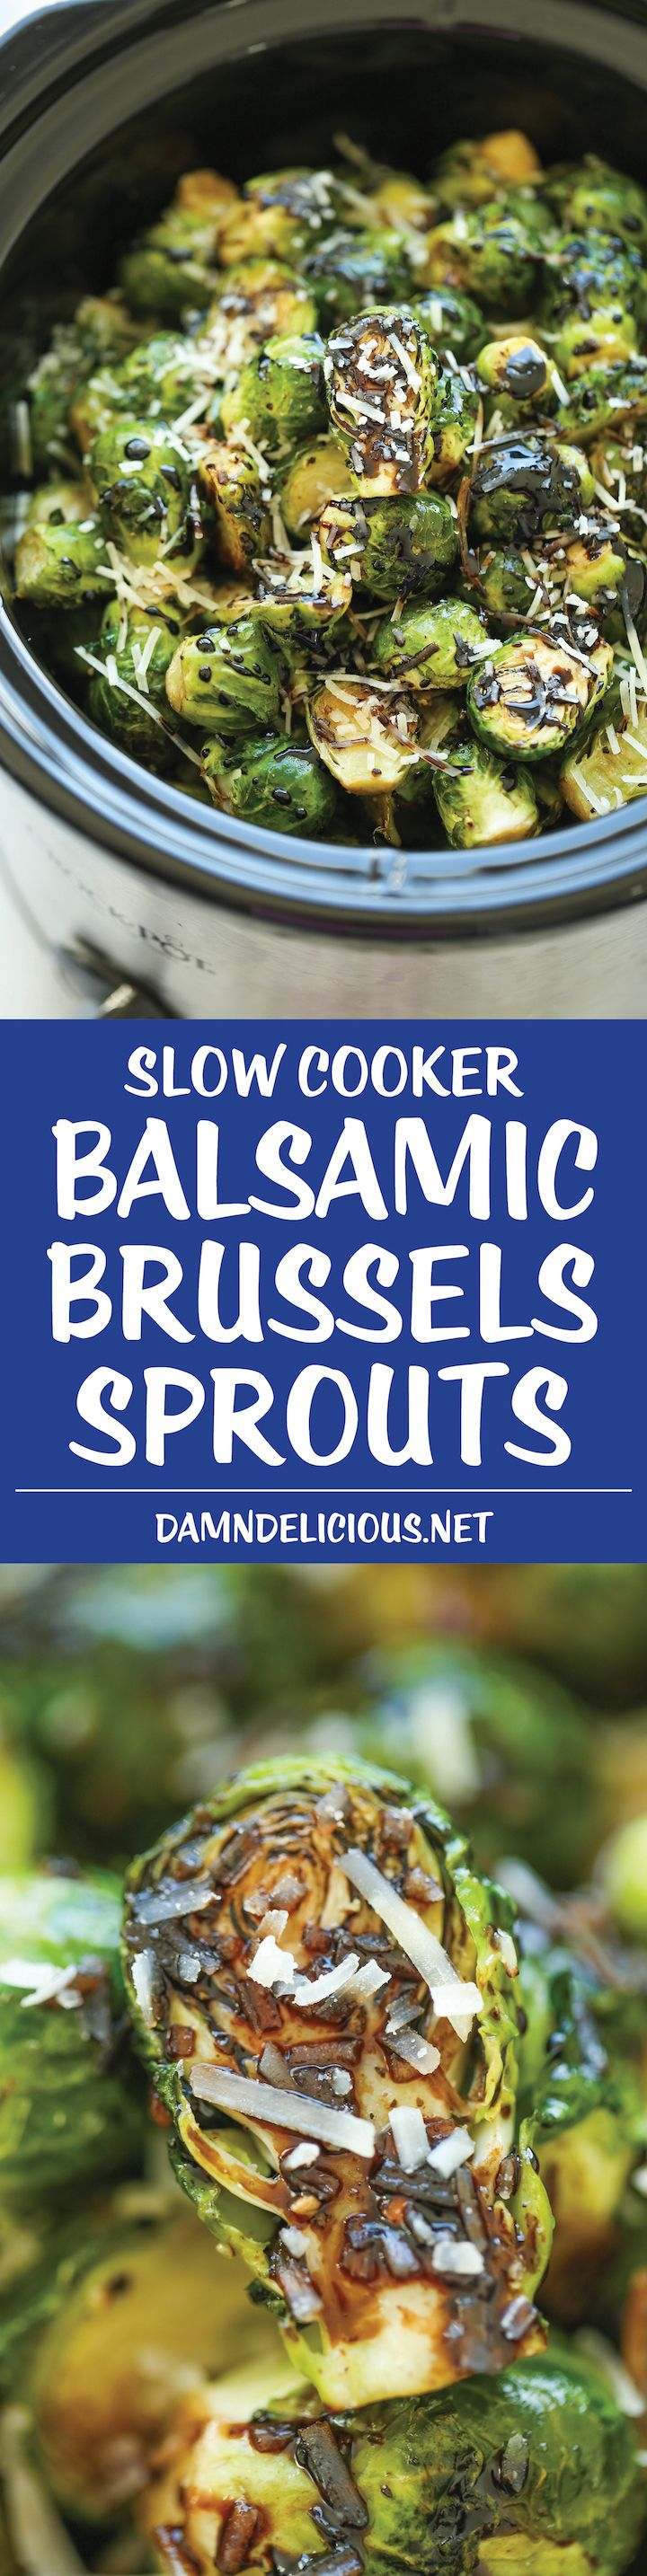 Instant Pot Brussel Sprouts Recipes Balsamic